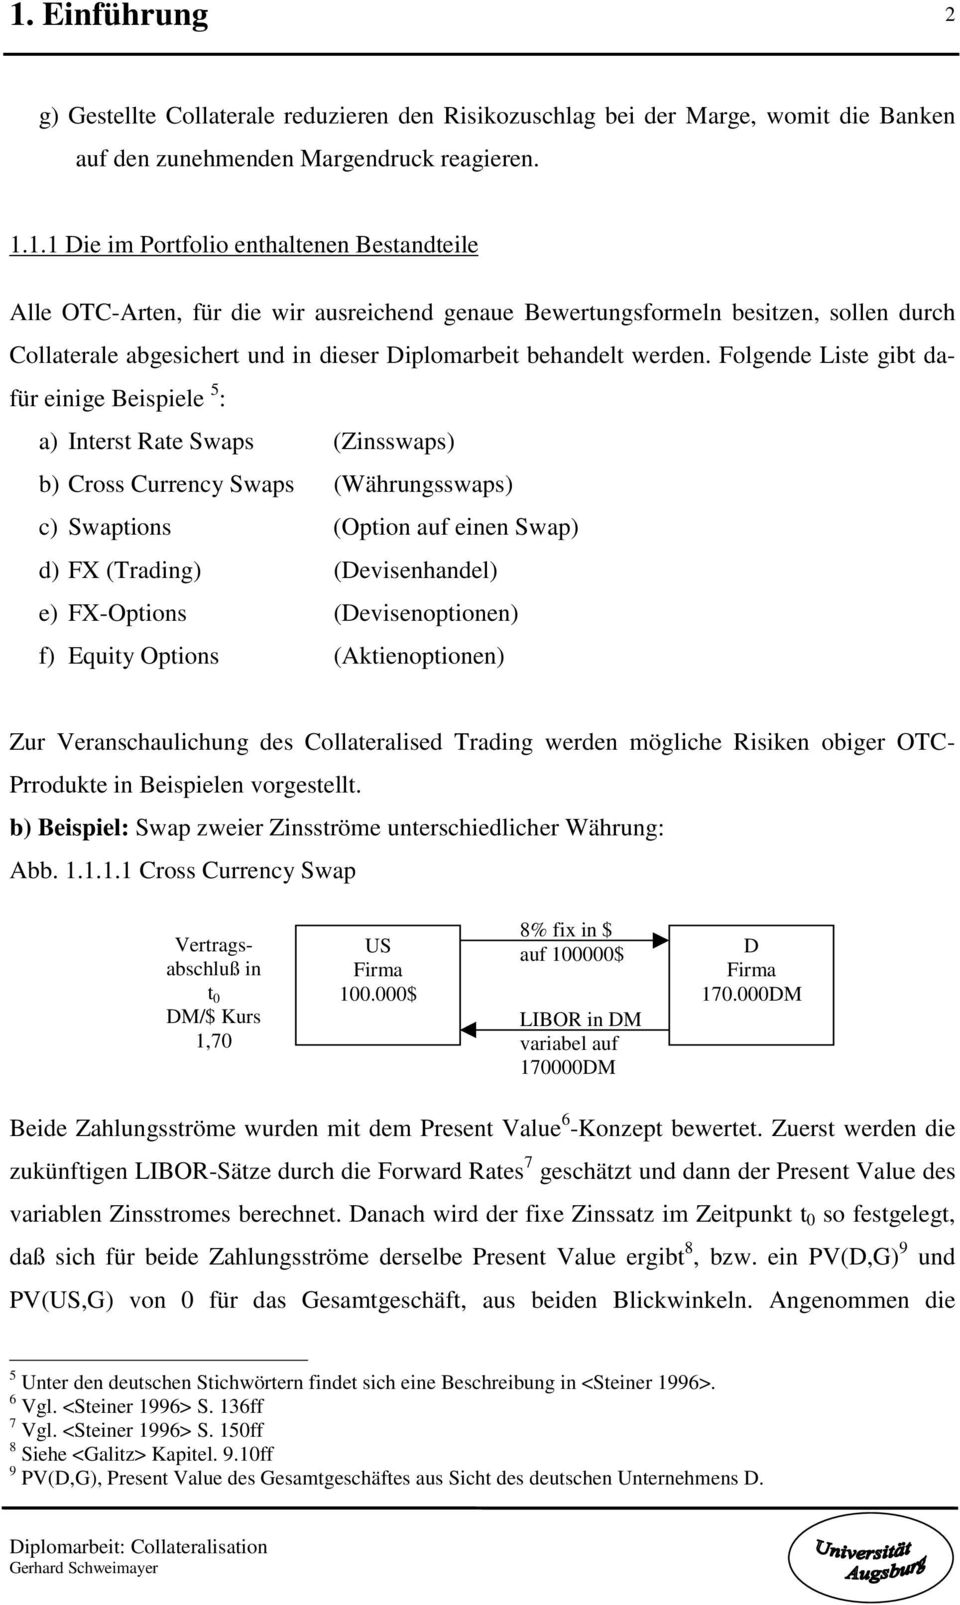 Folgende Liste gibt dafür einige Beispiele 5 : a) Interst Rate Swaps (Zinsswaps) b) Cross Currency Swaps (Währungsswaps) c) Swaptions (Option auf einen Swap) d) FX (Trading) (Devisenhandel) e)